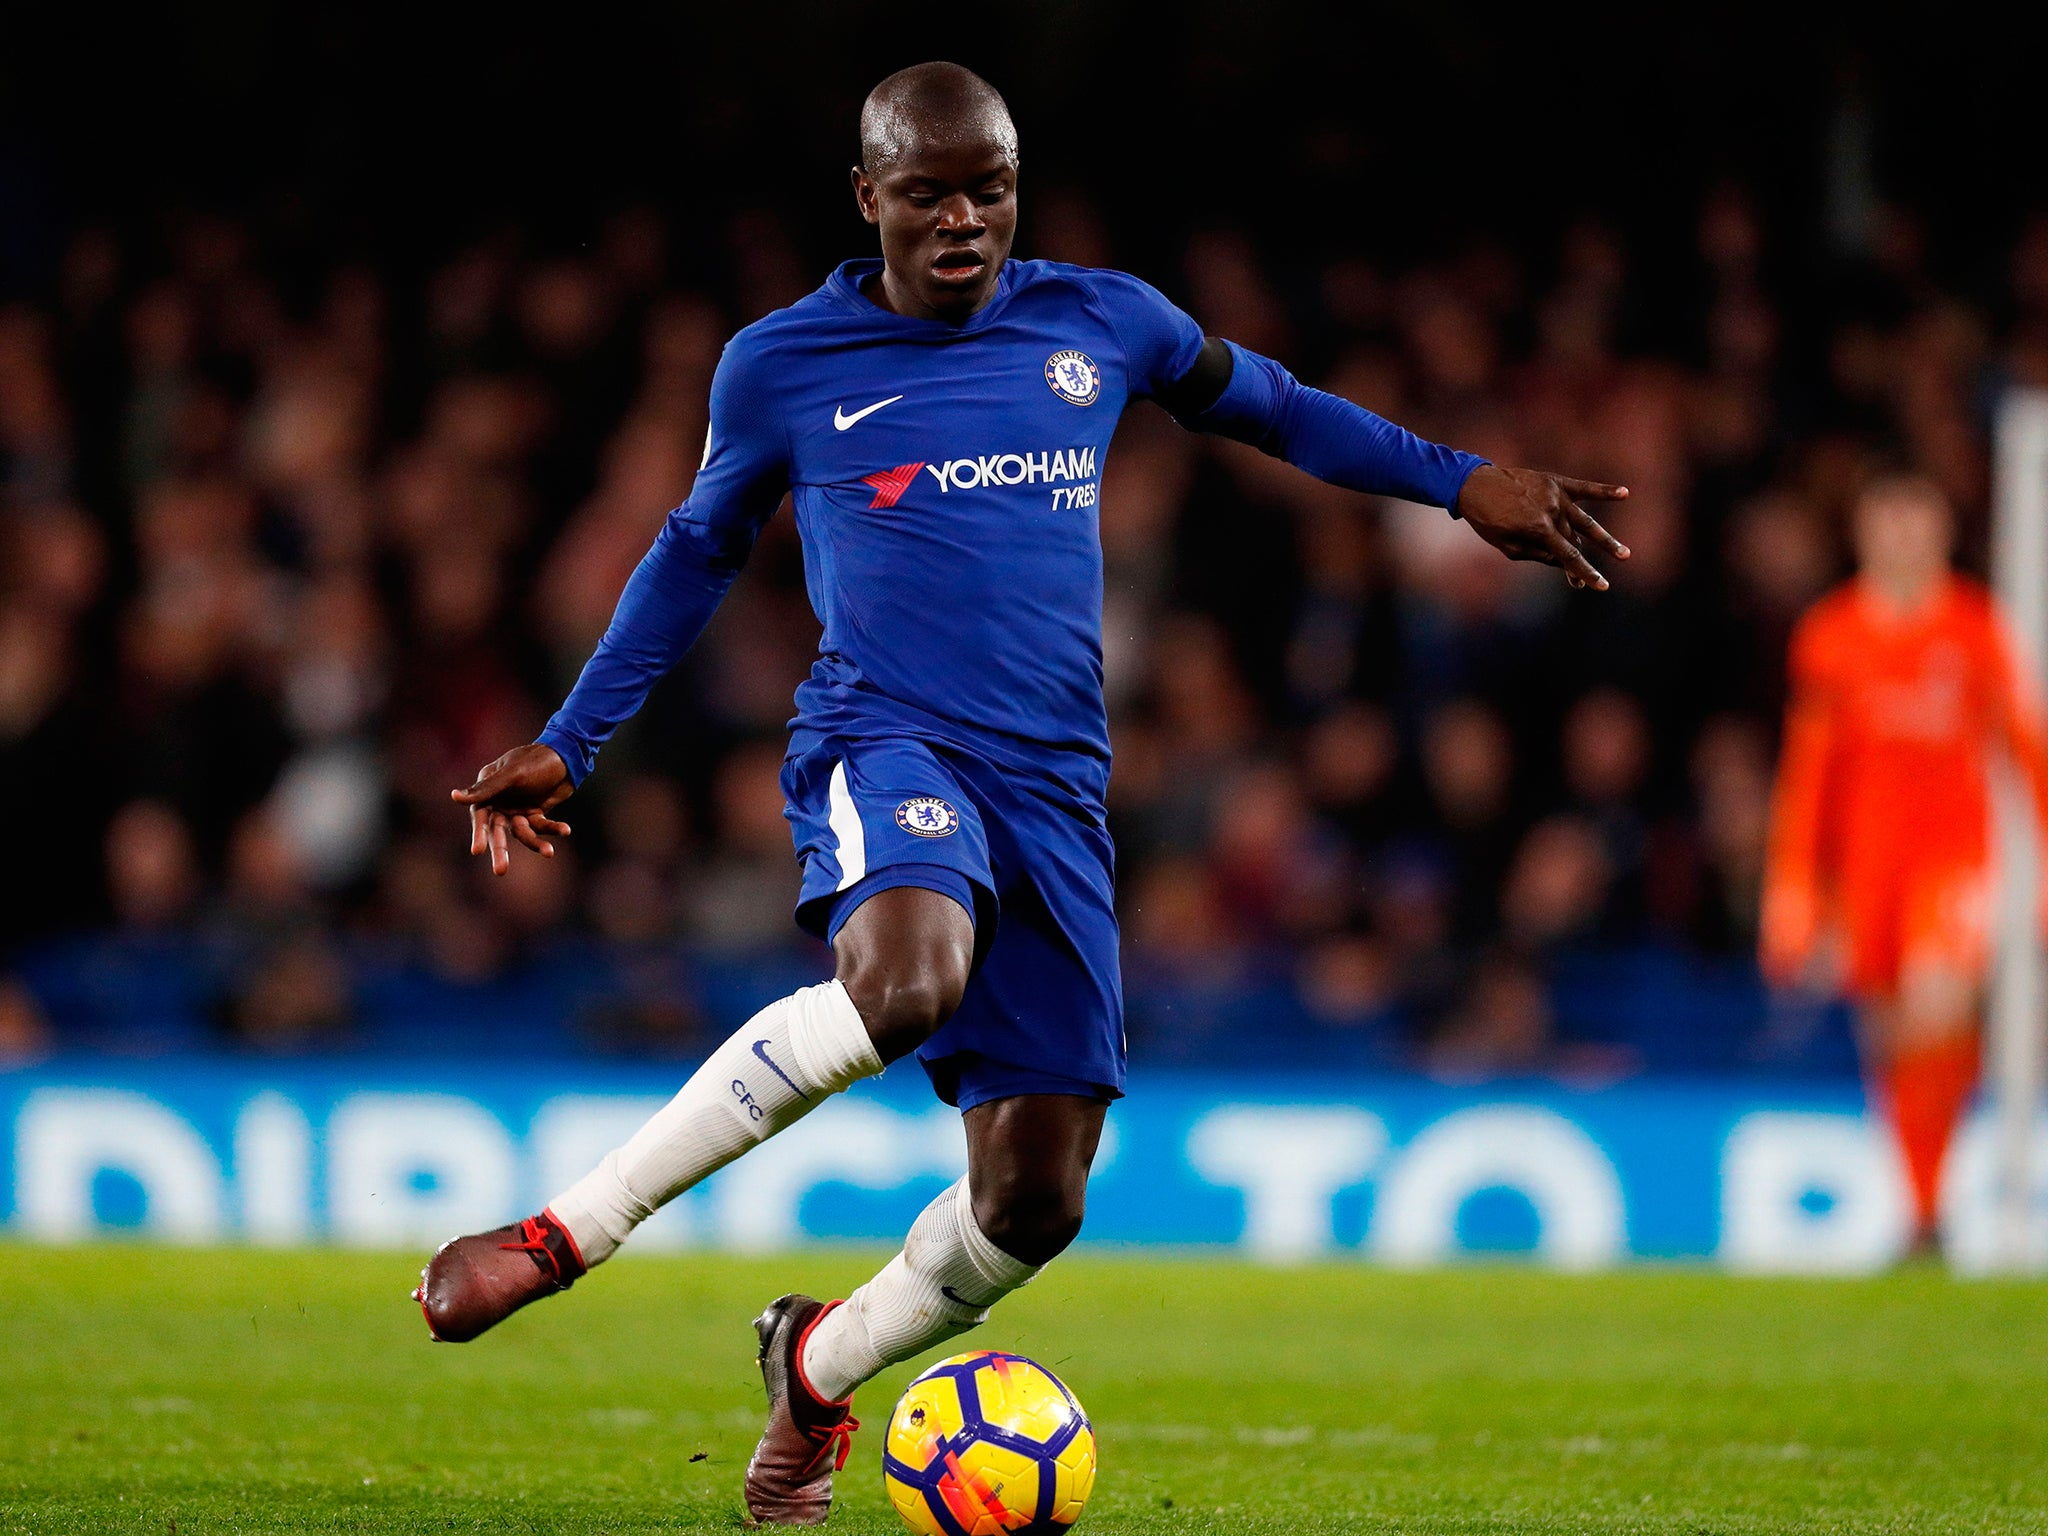 N'Golo Kante 'at home' with Chelsea as he plays down Paris Saint-Germain transfer rumours